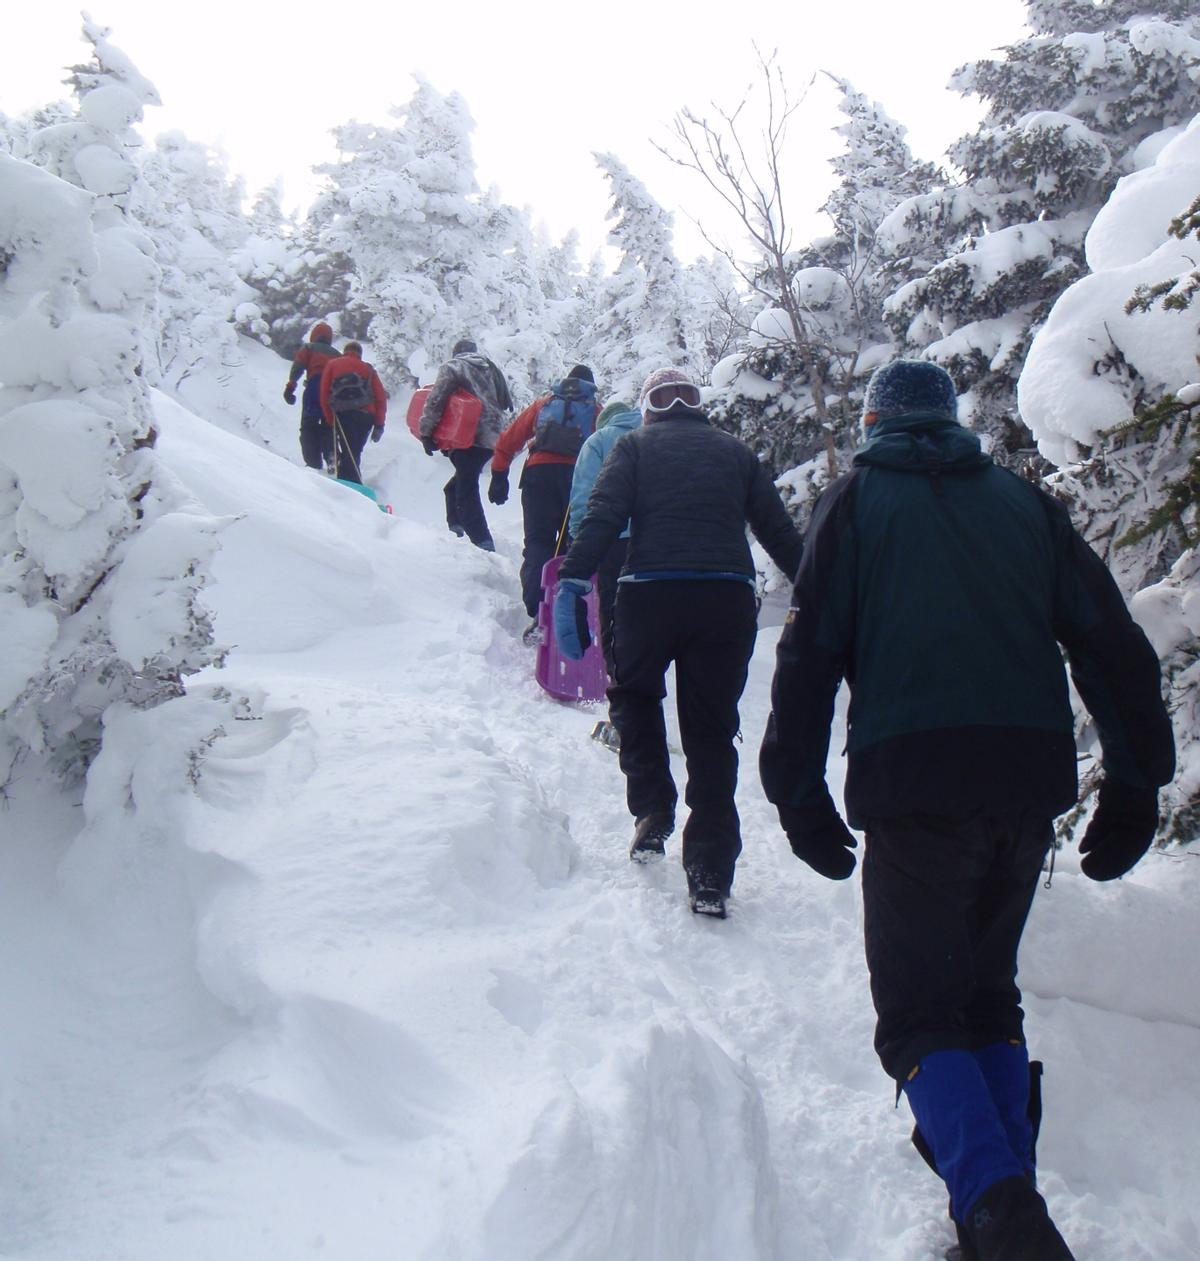 Sometimes trails are packed down enough that you don't need snowshoes. You probably want to bring them just in case though!